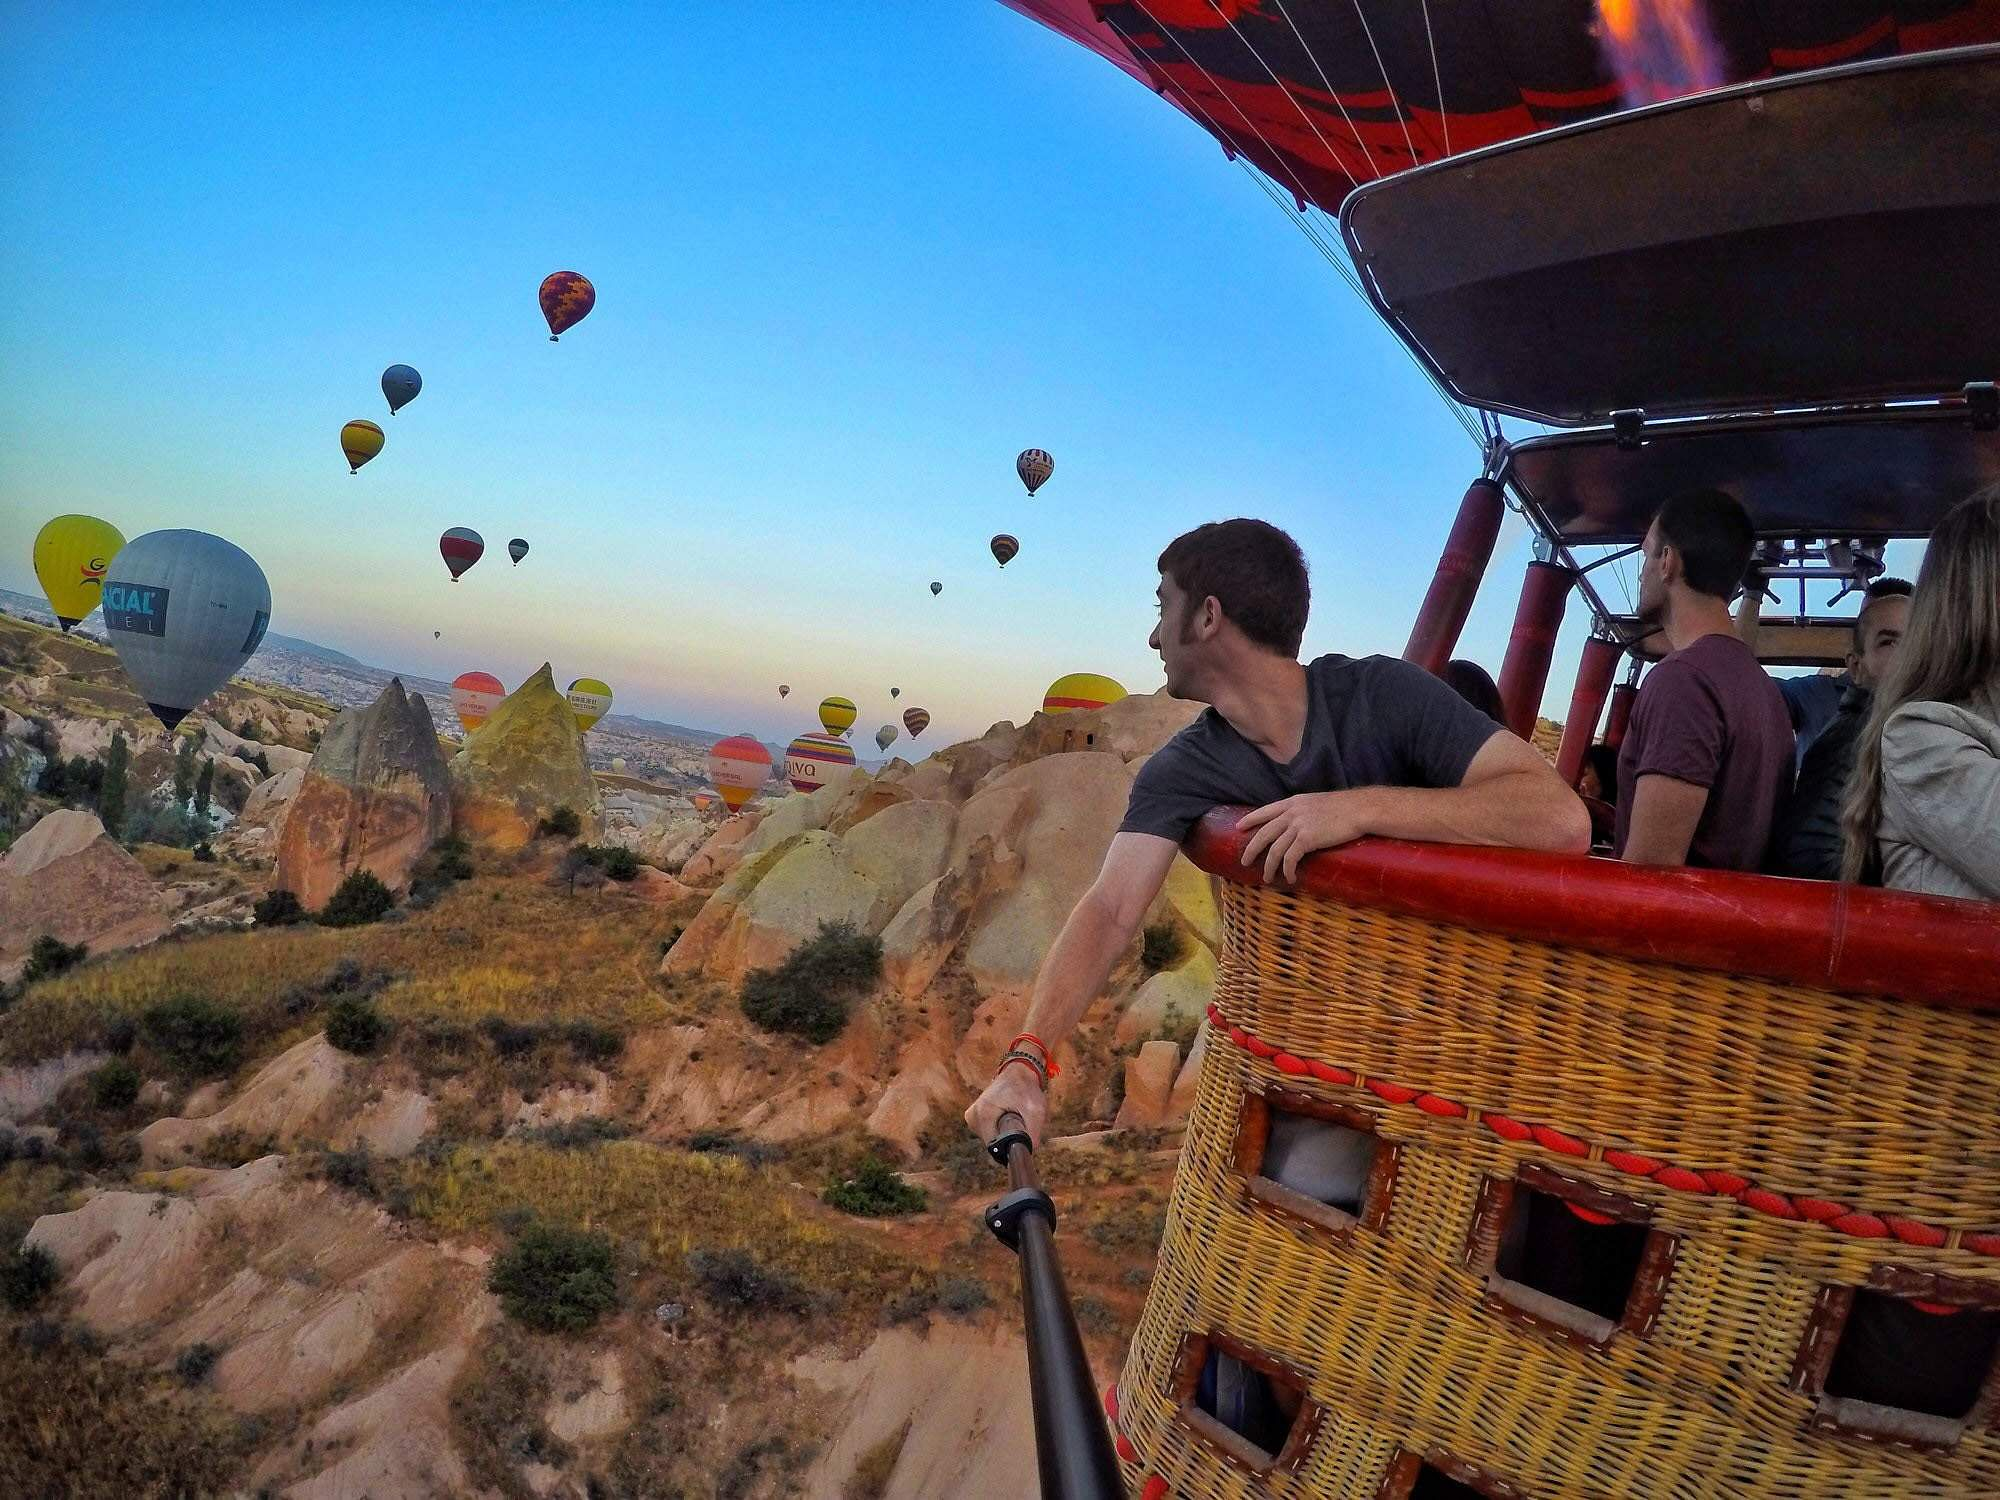 Up in the air in Cappadocia, Turkey